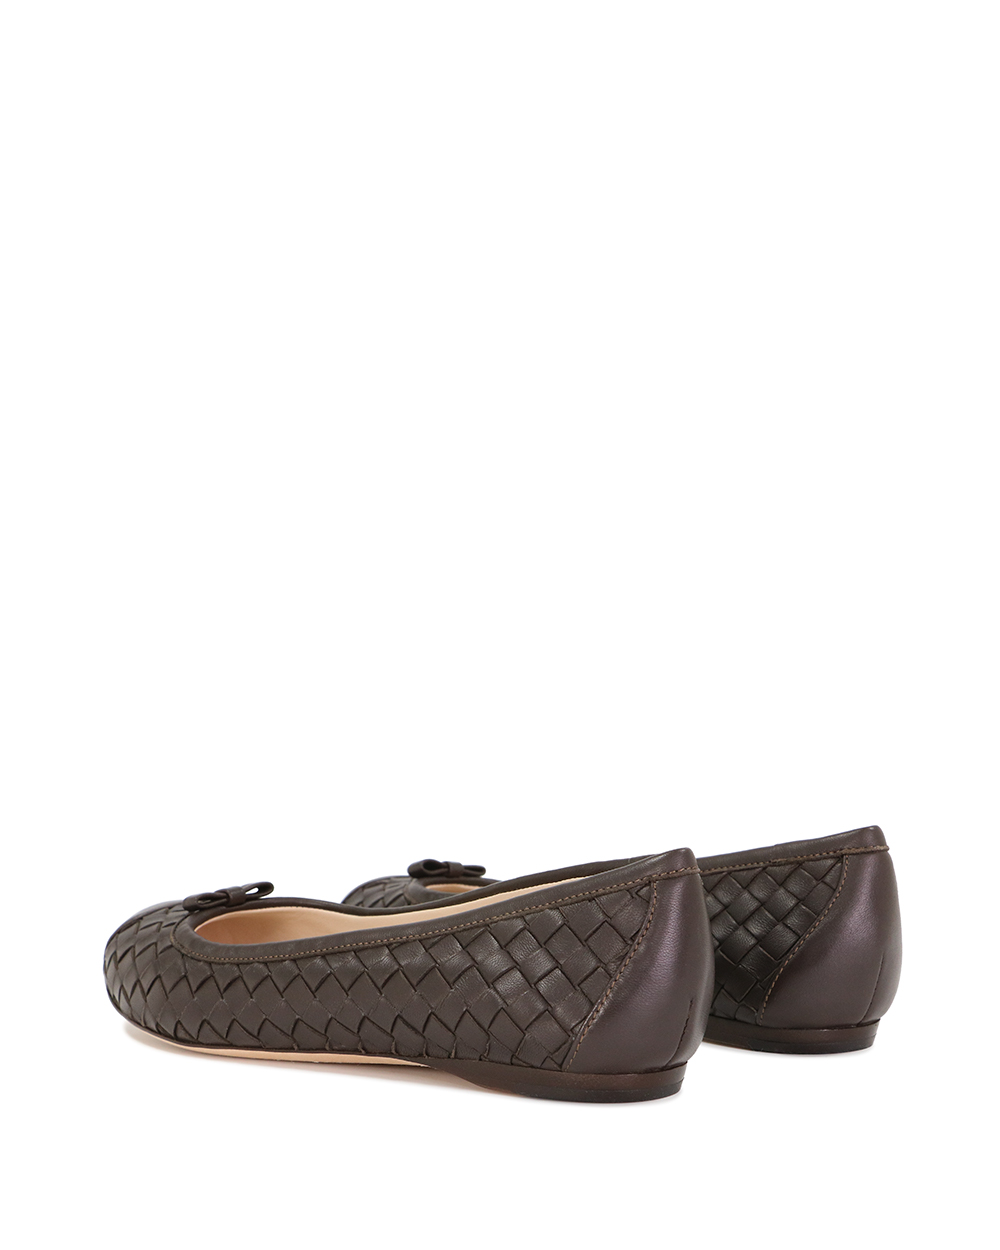 Leather Woven Flats 2